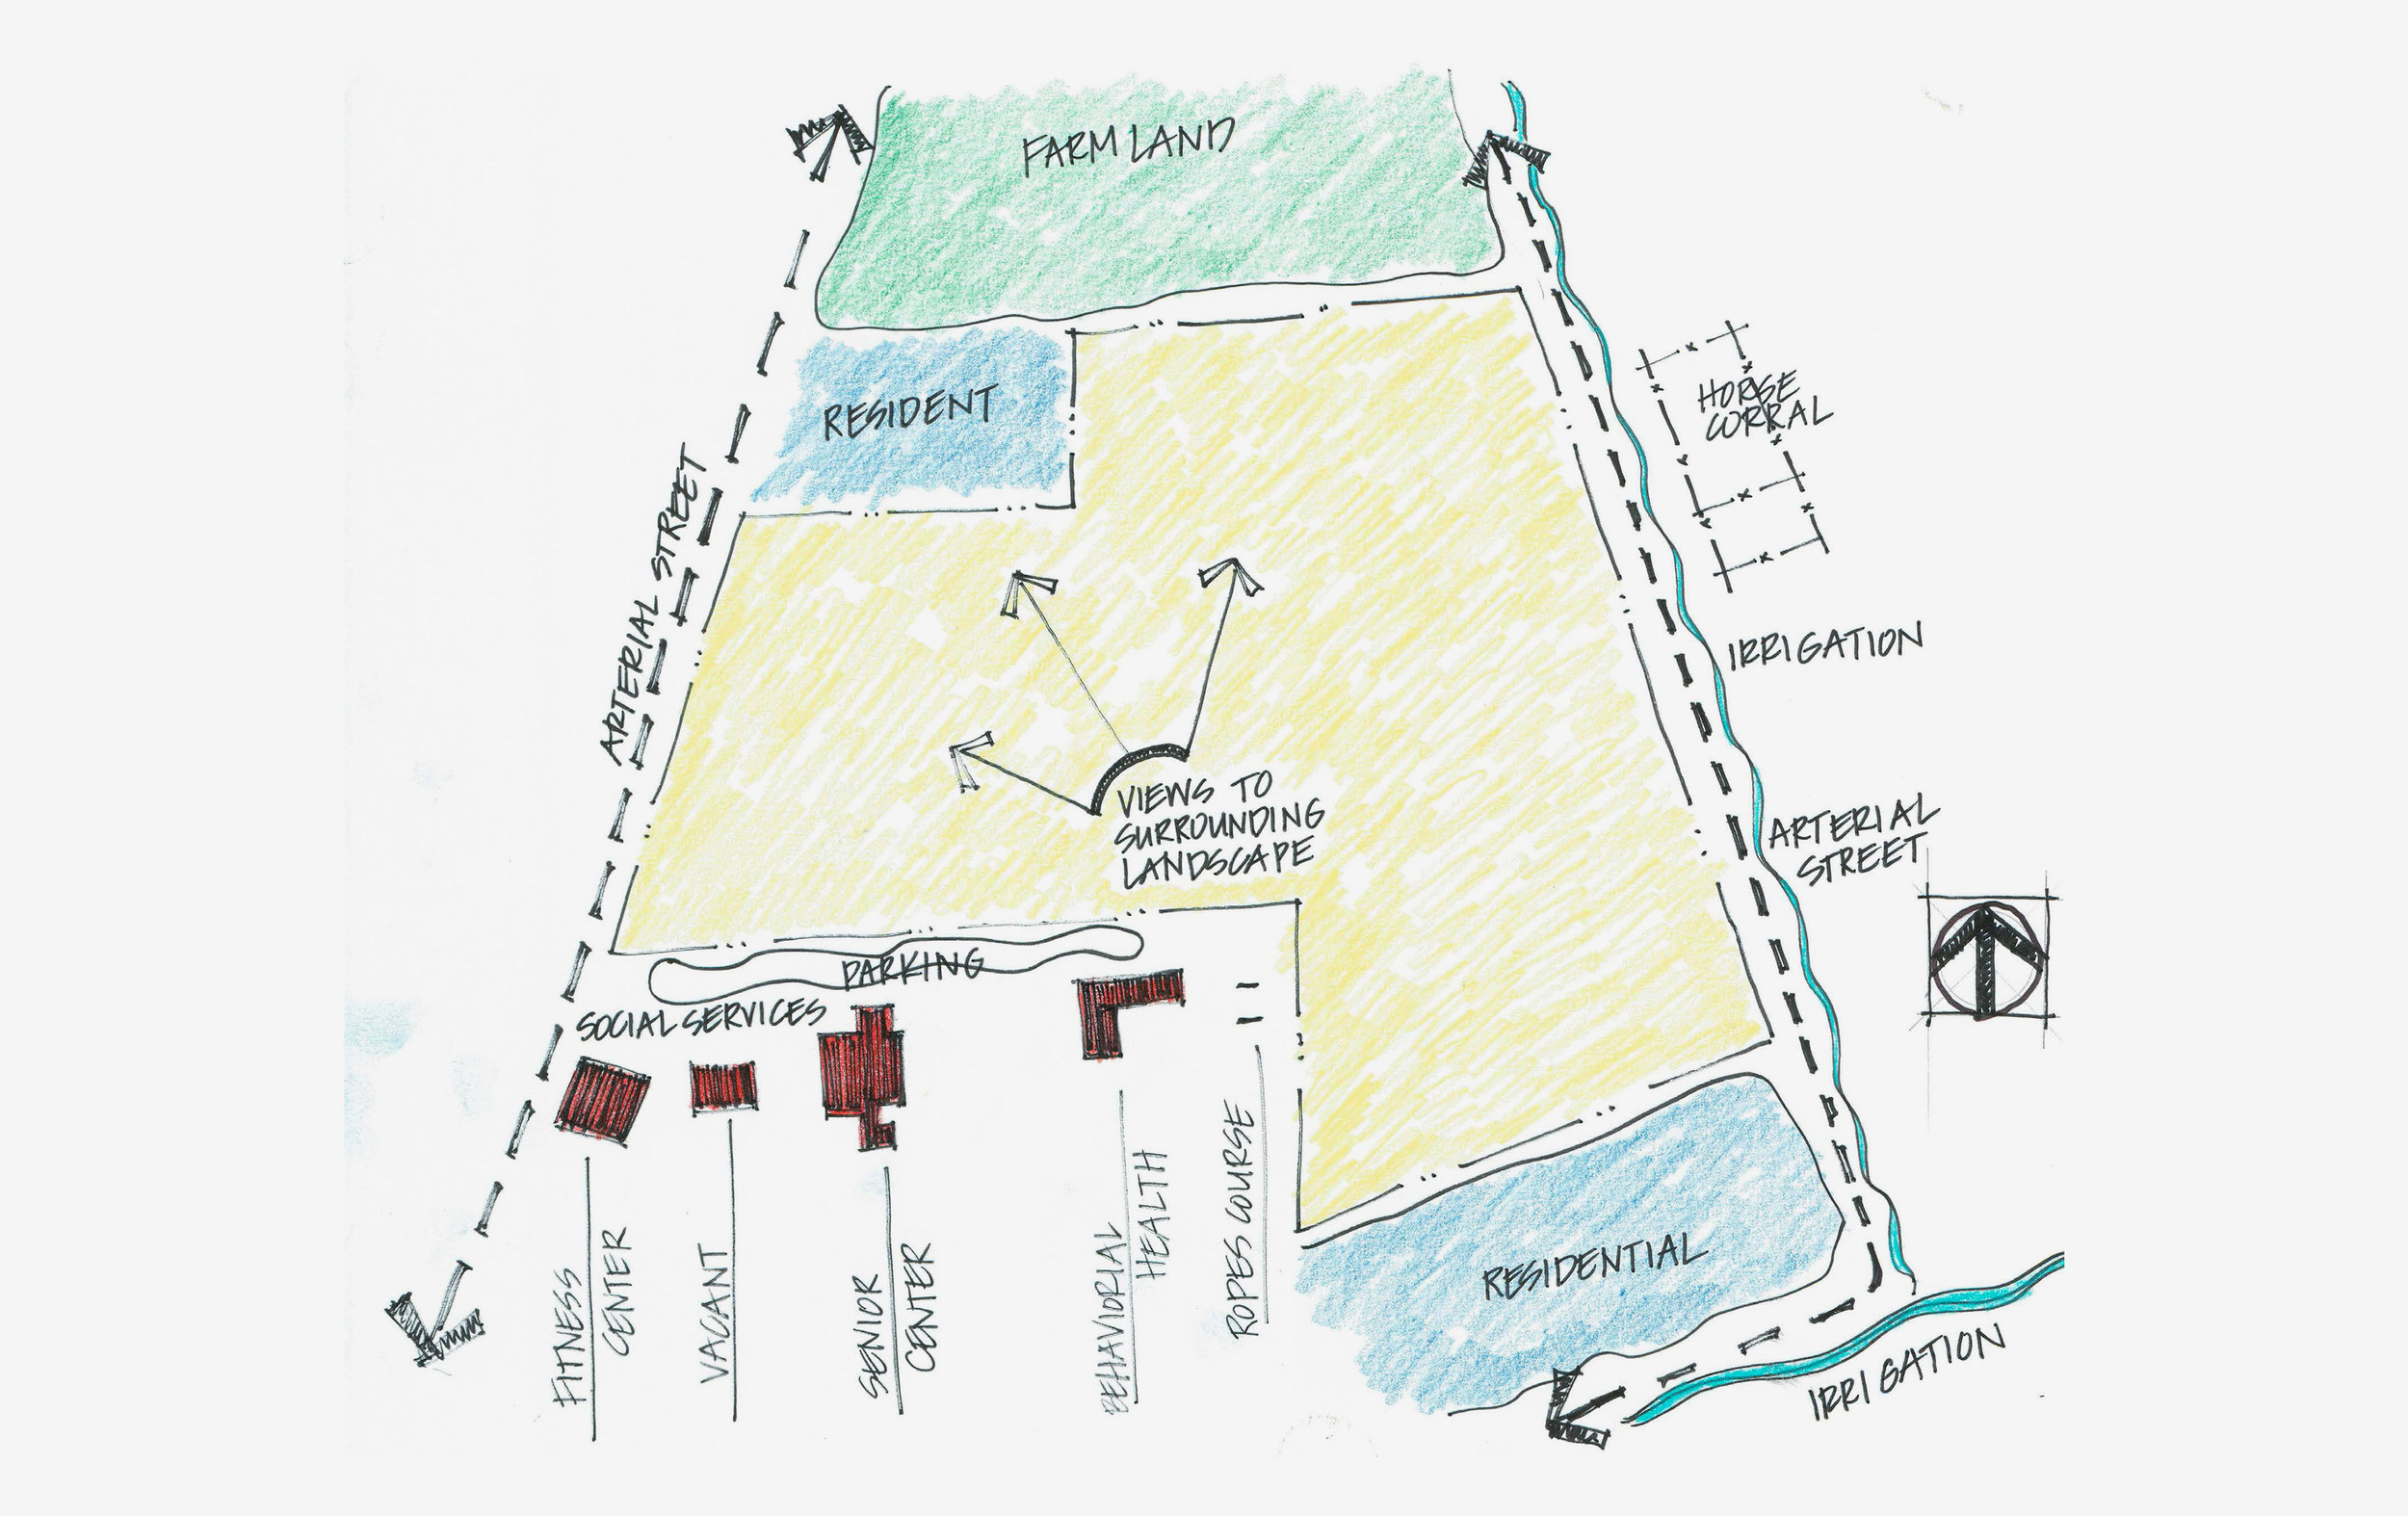 The Village Housing Project Concept Diagram